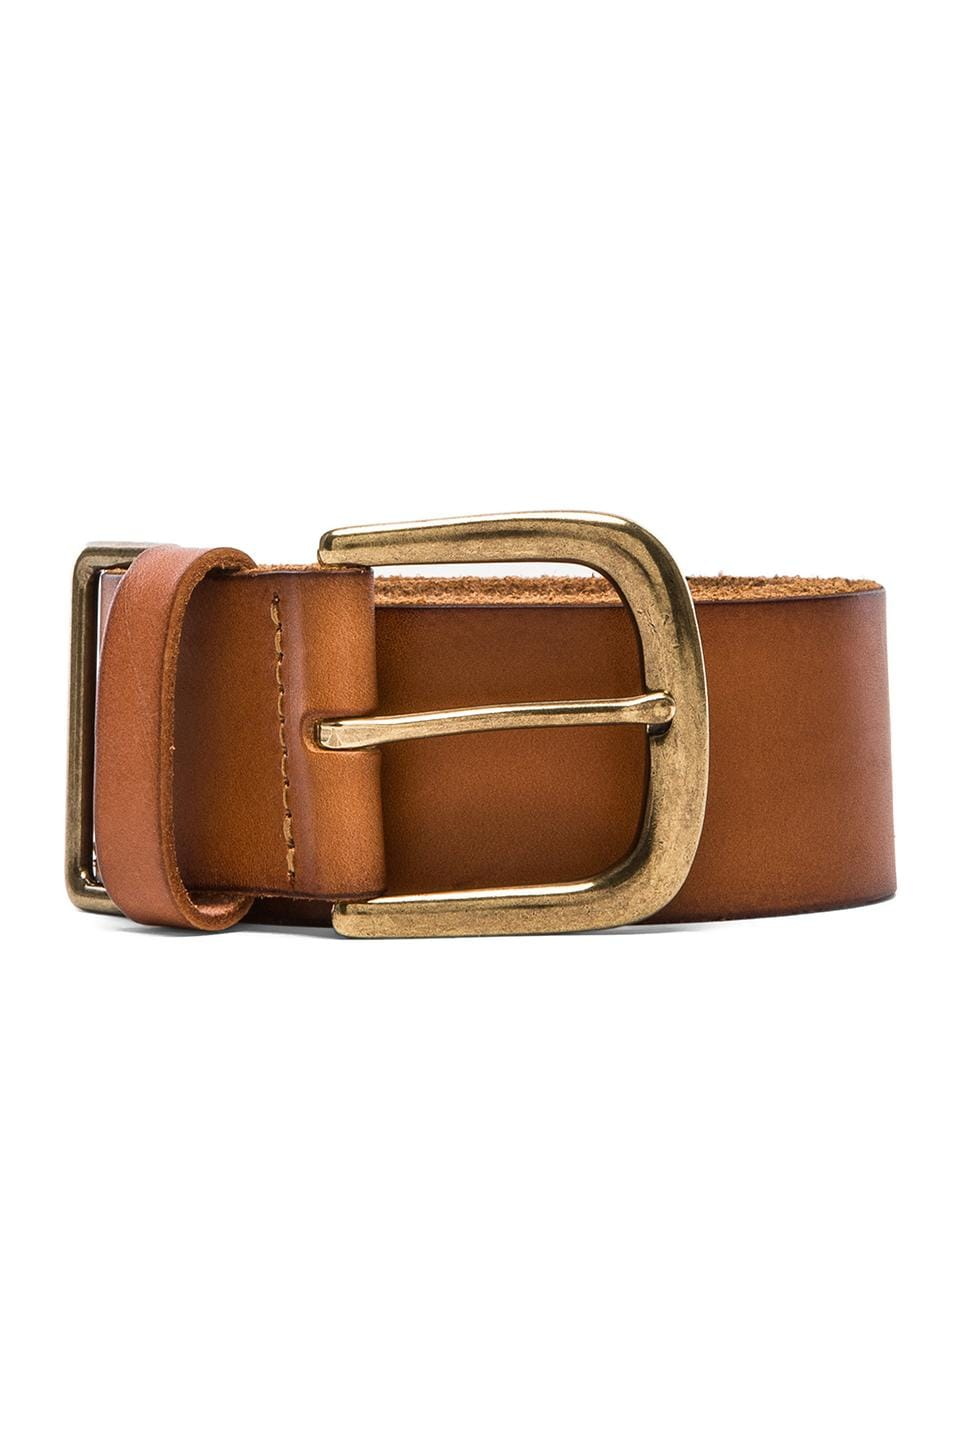 Linea Pelle Sullivan Military Hip w/ Metal Tip in Cognac